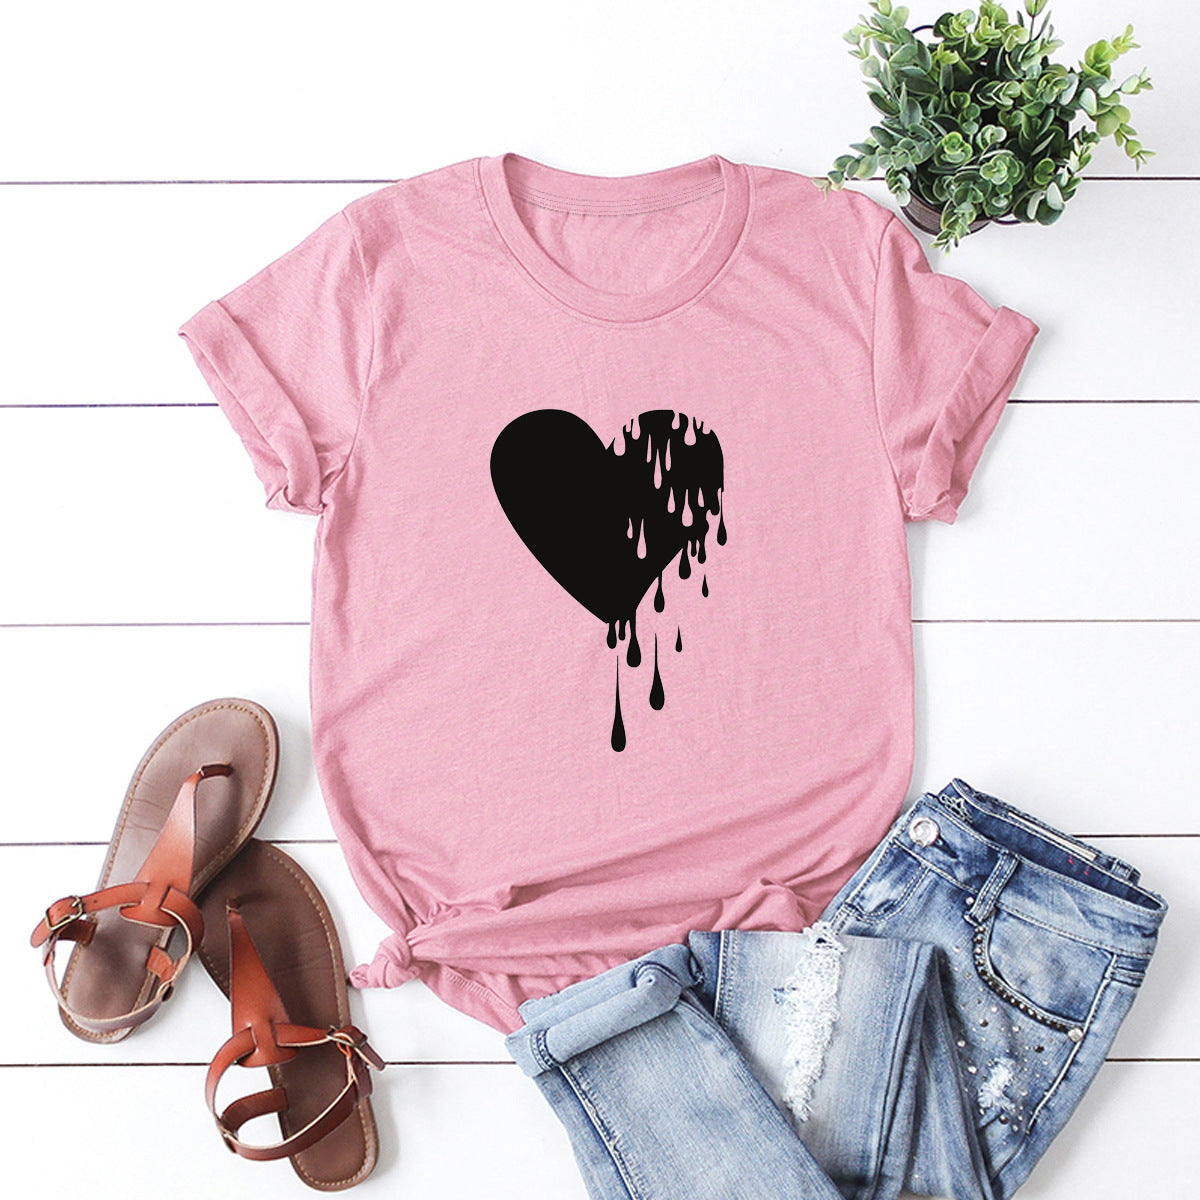 JFUNCY Casual Print Harajuku Graphic Tee Women Shirts Lady Plus Size Summer Loose Tshirts 100% Cotton T-shirts Female Tops